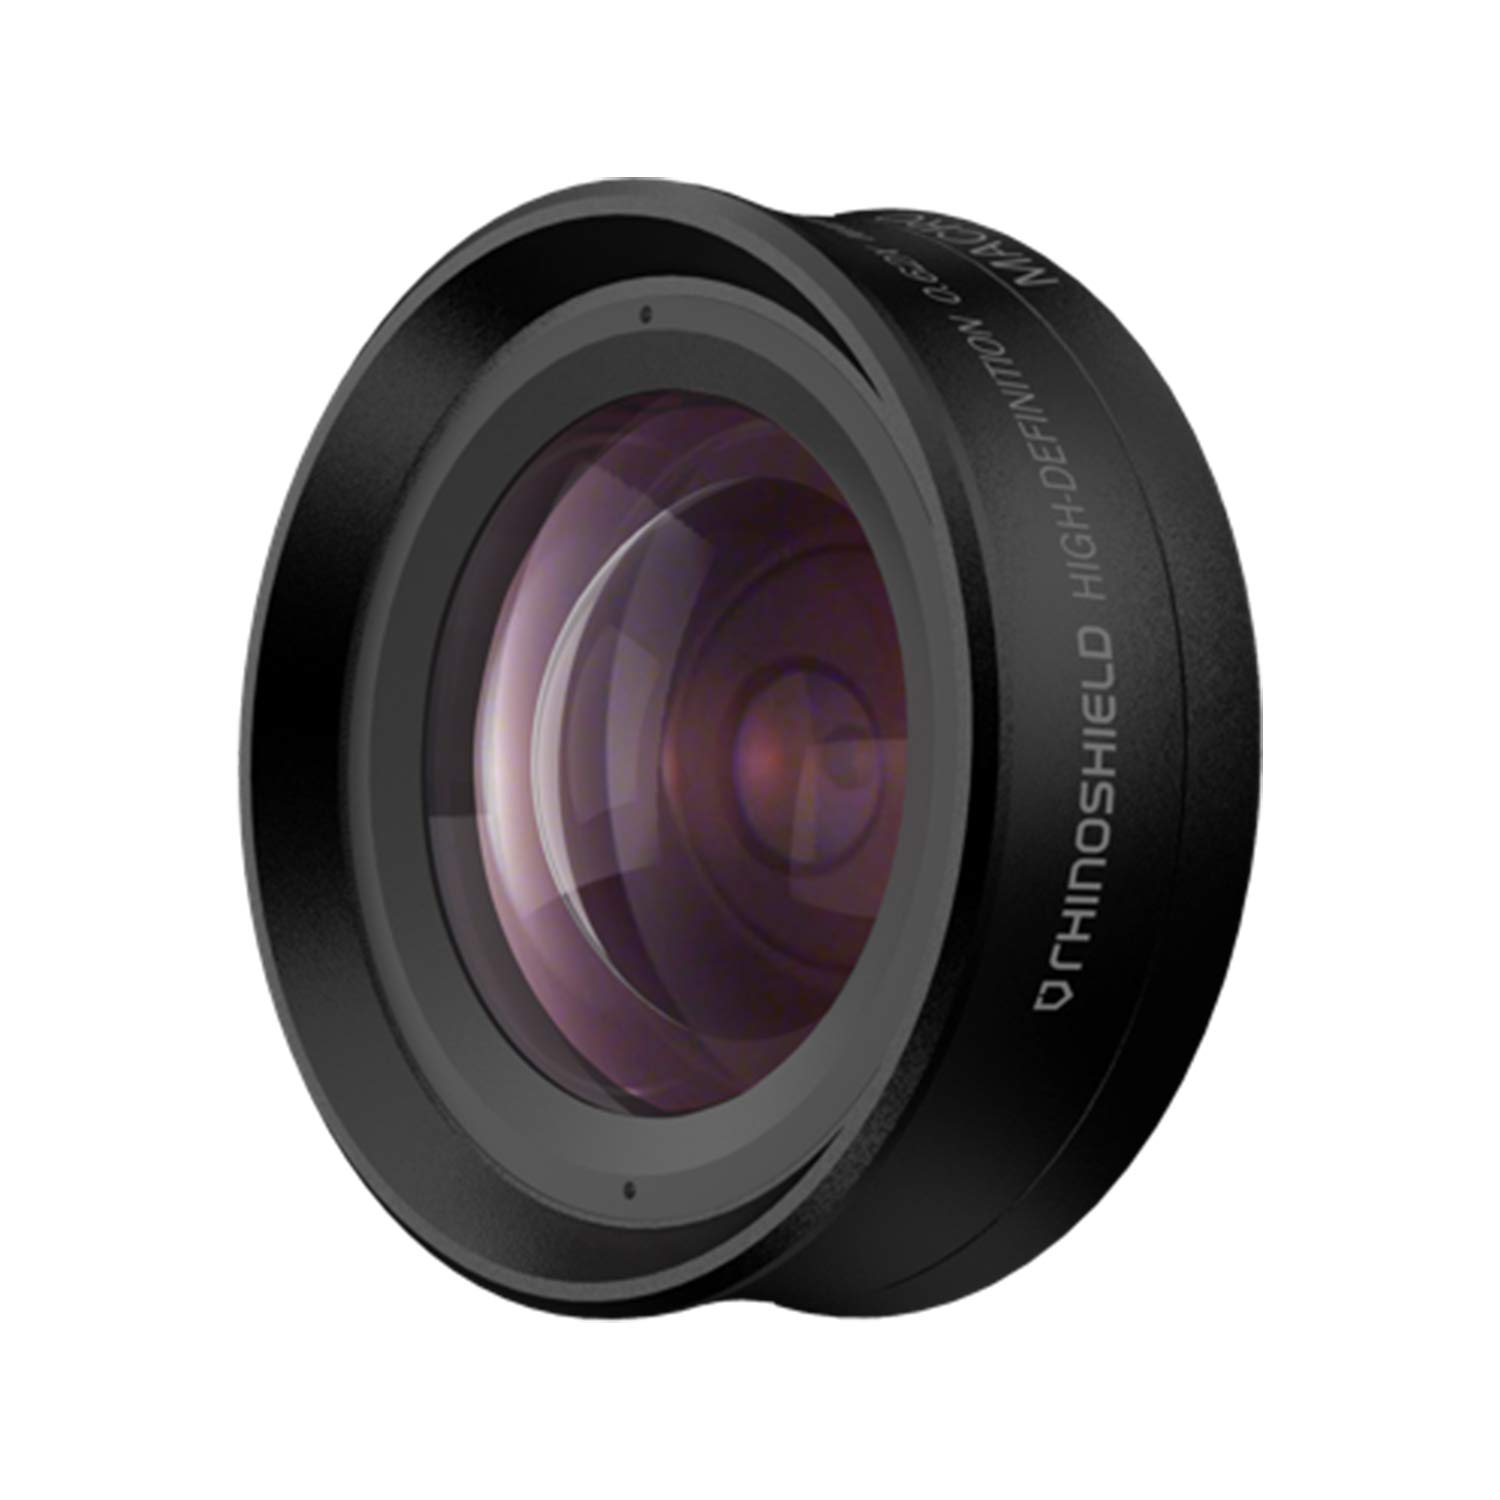 Macro Bayonet-Style Mount Phone Camera Lens Professional Wide Angle 2 in 1 Add-On Camera Lens by RhinoShield